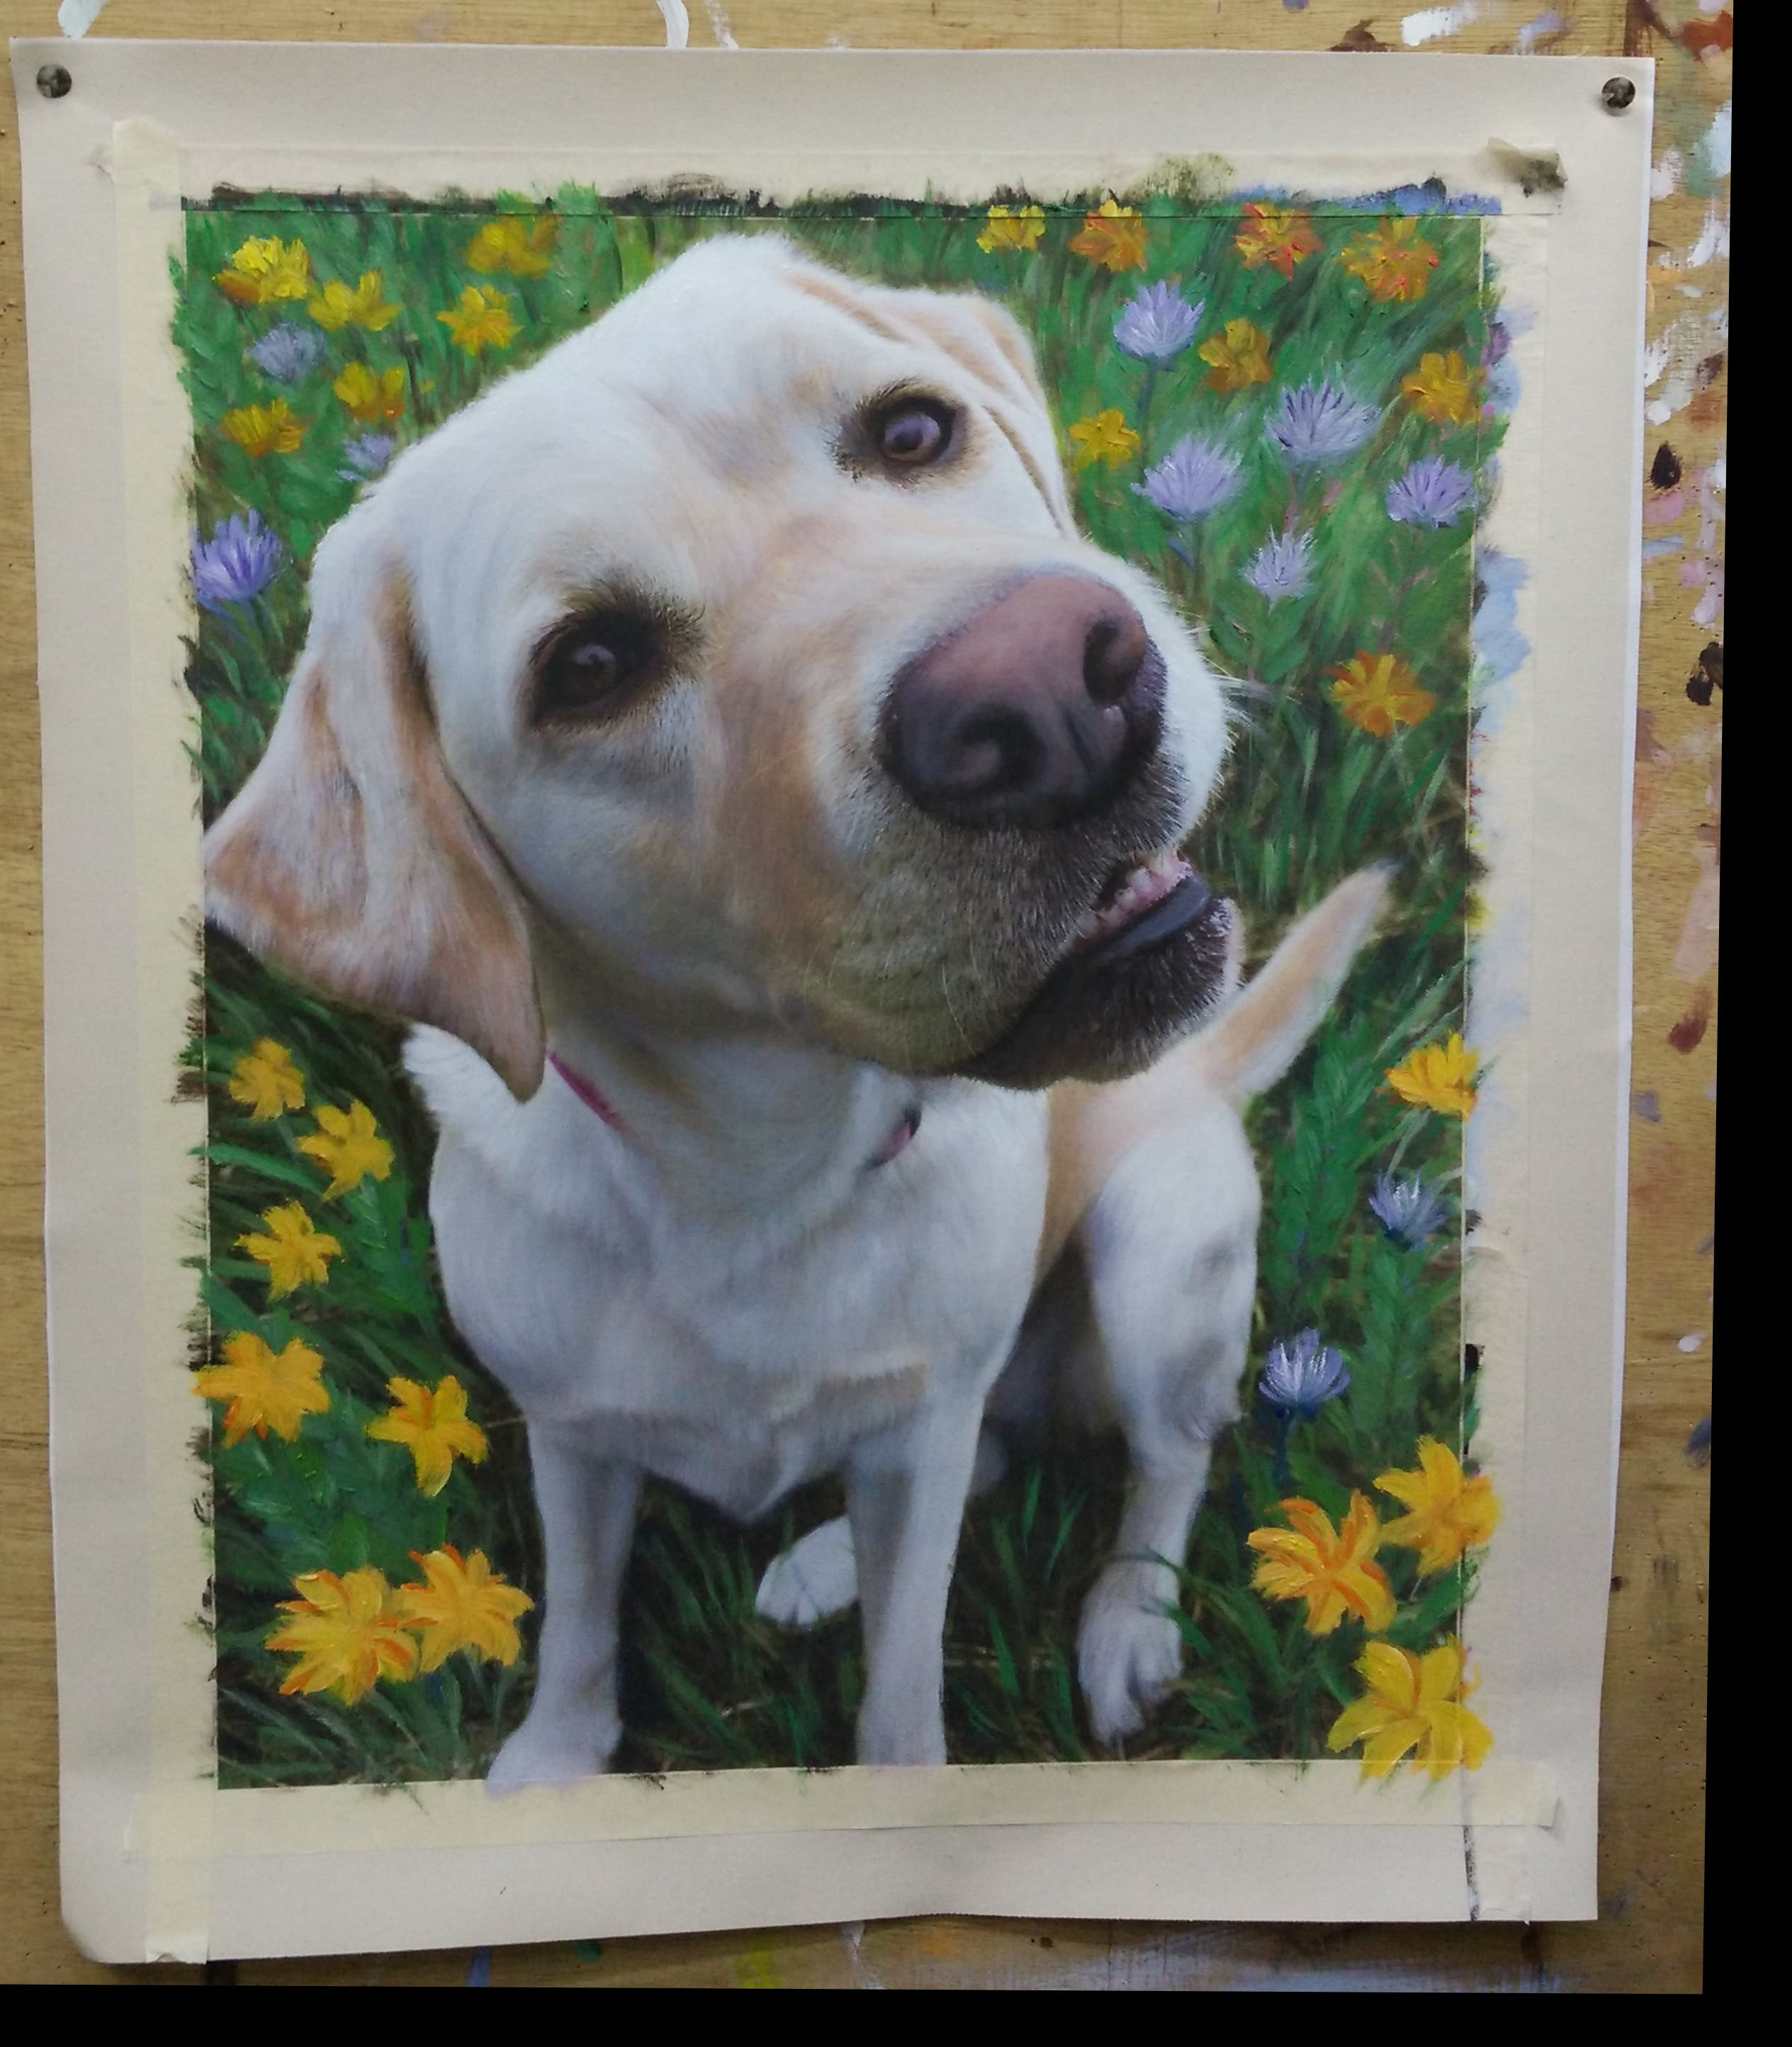 Painted photo of a yellow labrador retriever sitting in a field of flowers